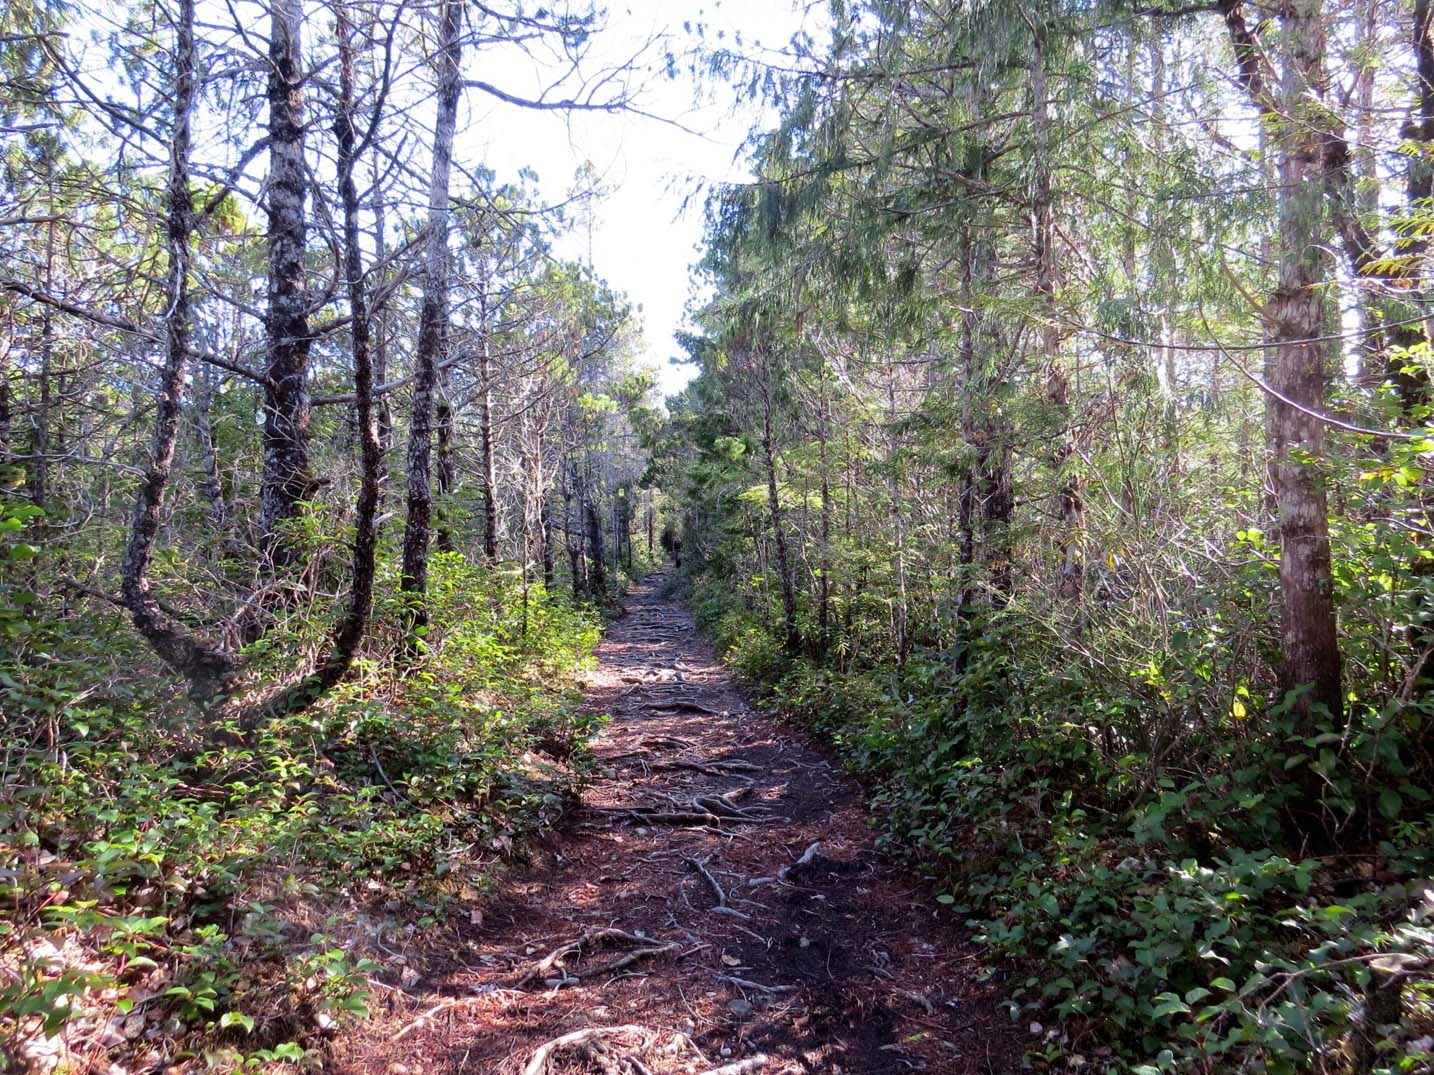 Rooty trail leading through forest